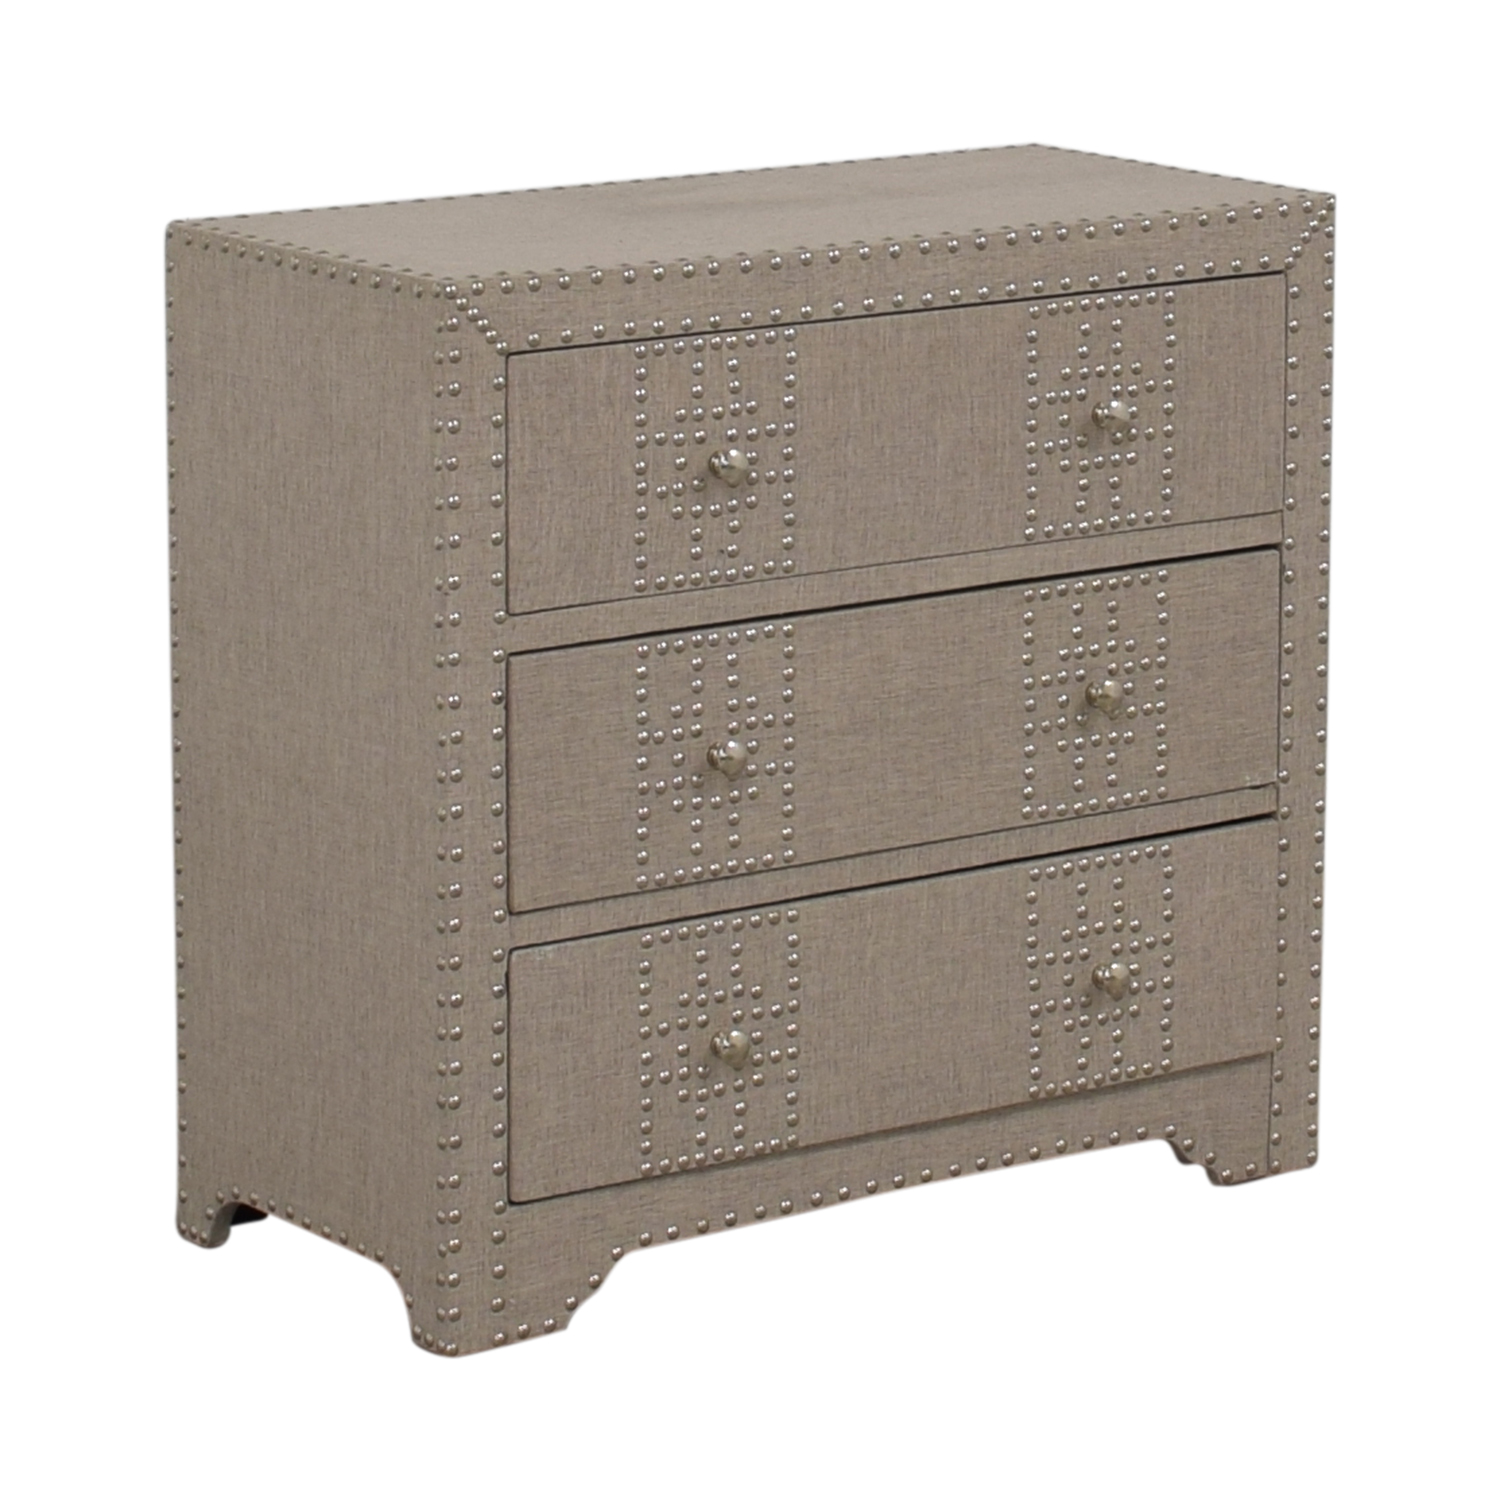 buy Wayfair Gordy Grey Upholstered Nailhead Three-Drawer Dresser Wayfair